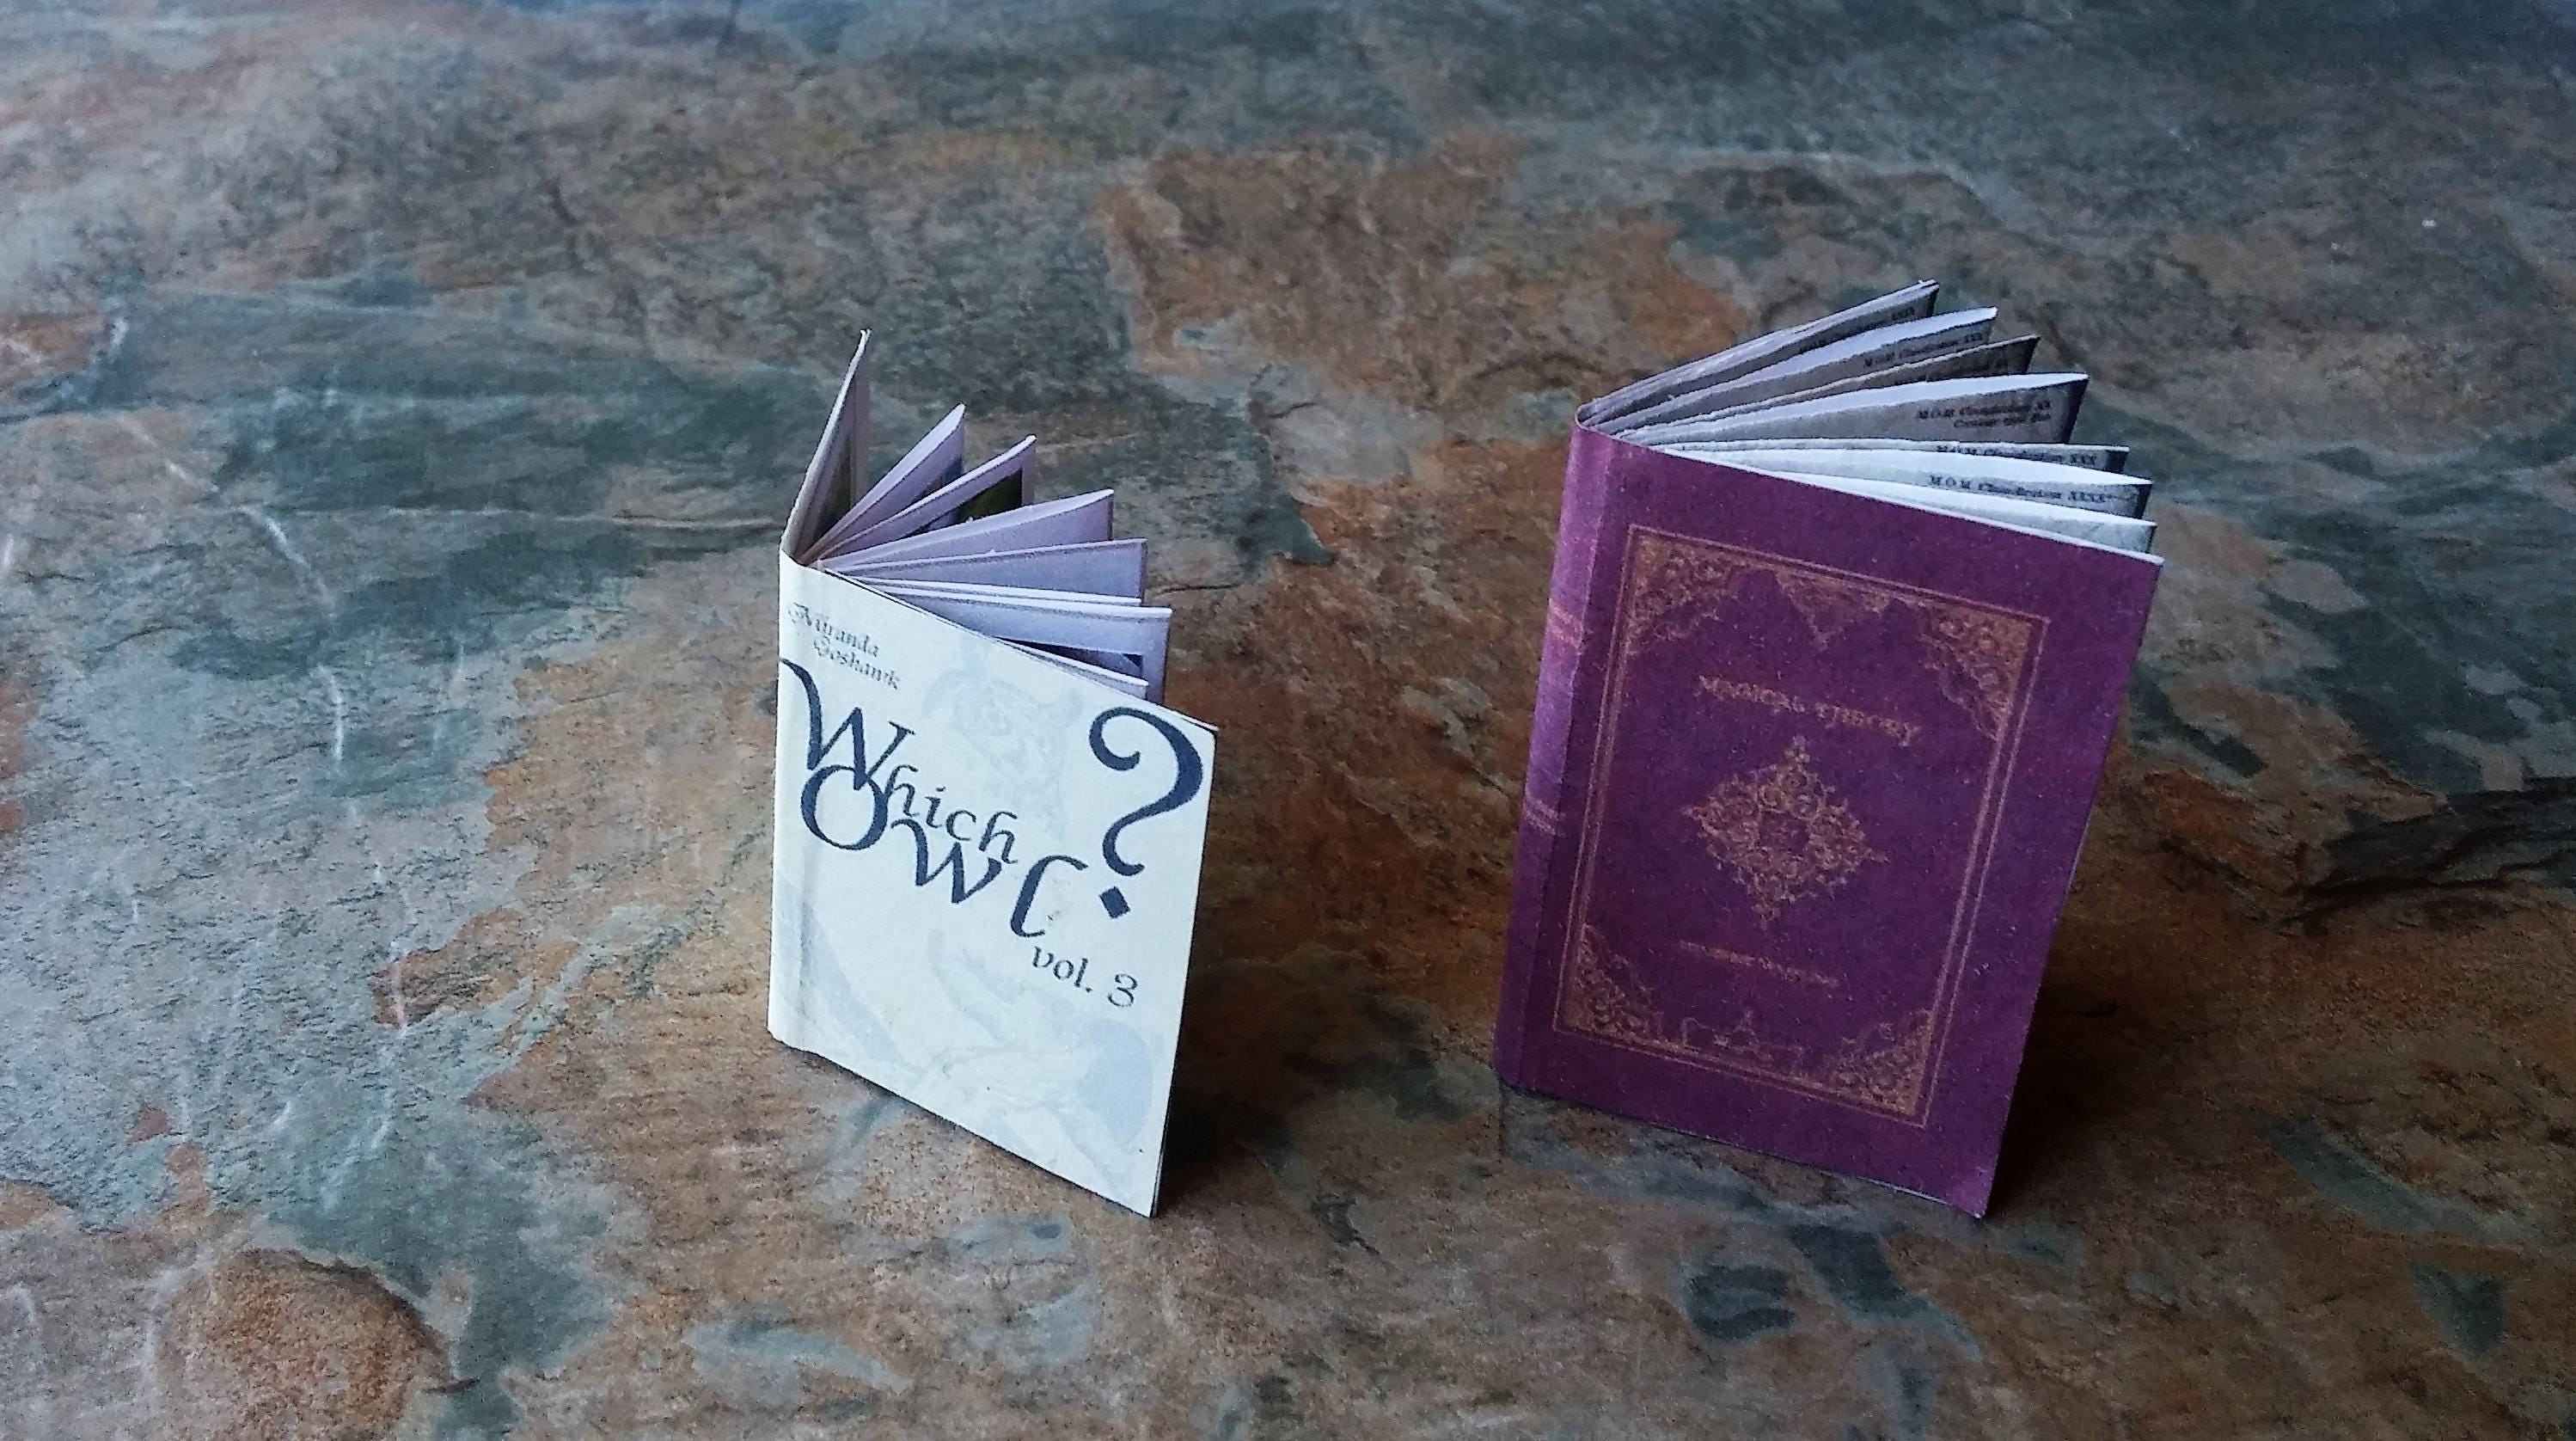 Harry Potter Dolls House Miniature Owl Book  Hogwarts Creatures Miniature Harry Potter BooksDolls AccessoriesWitchesWizardsOriginal